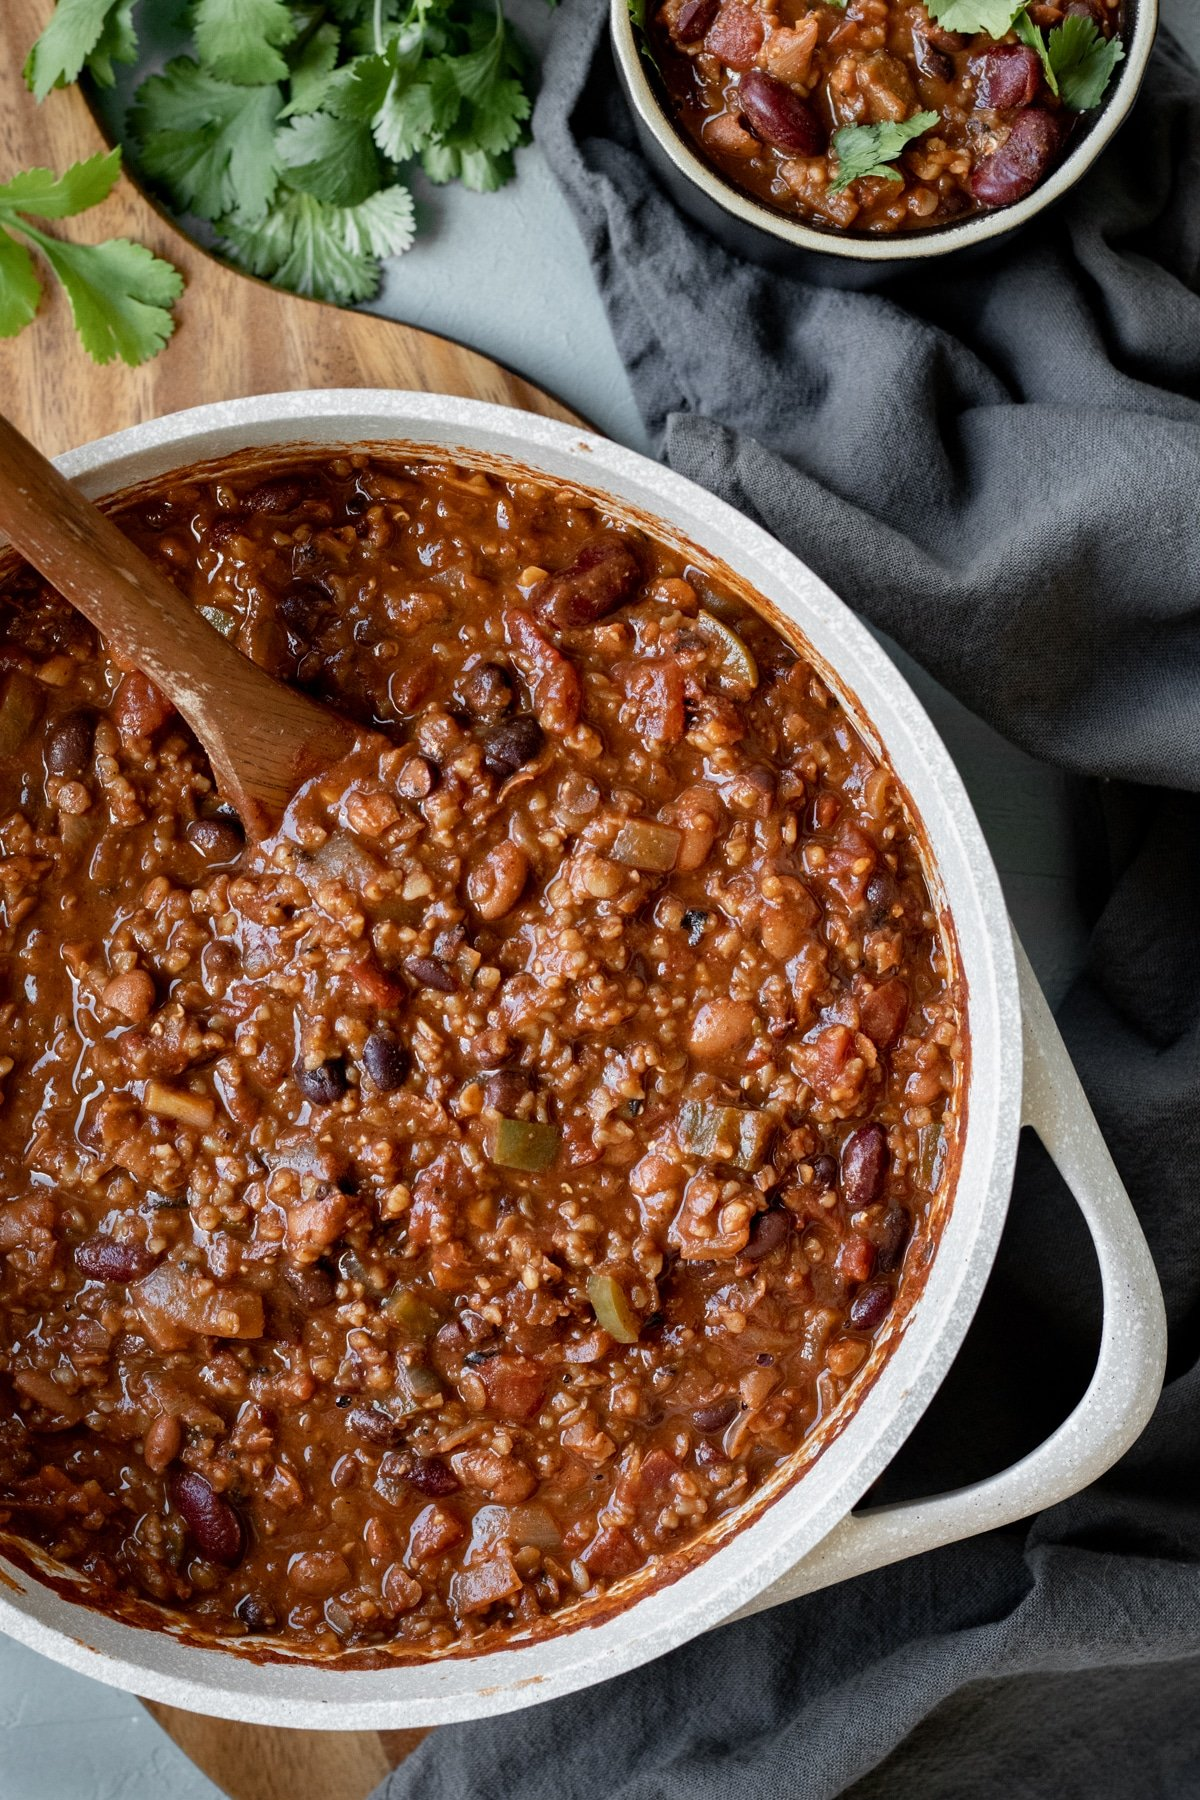 a big pot of vegan chili with a cup of chili on the side